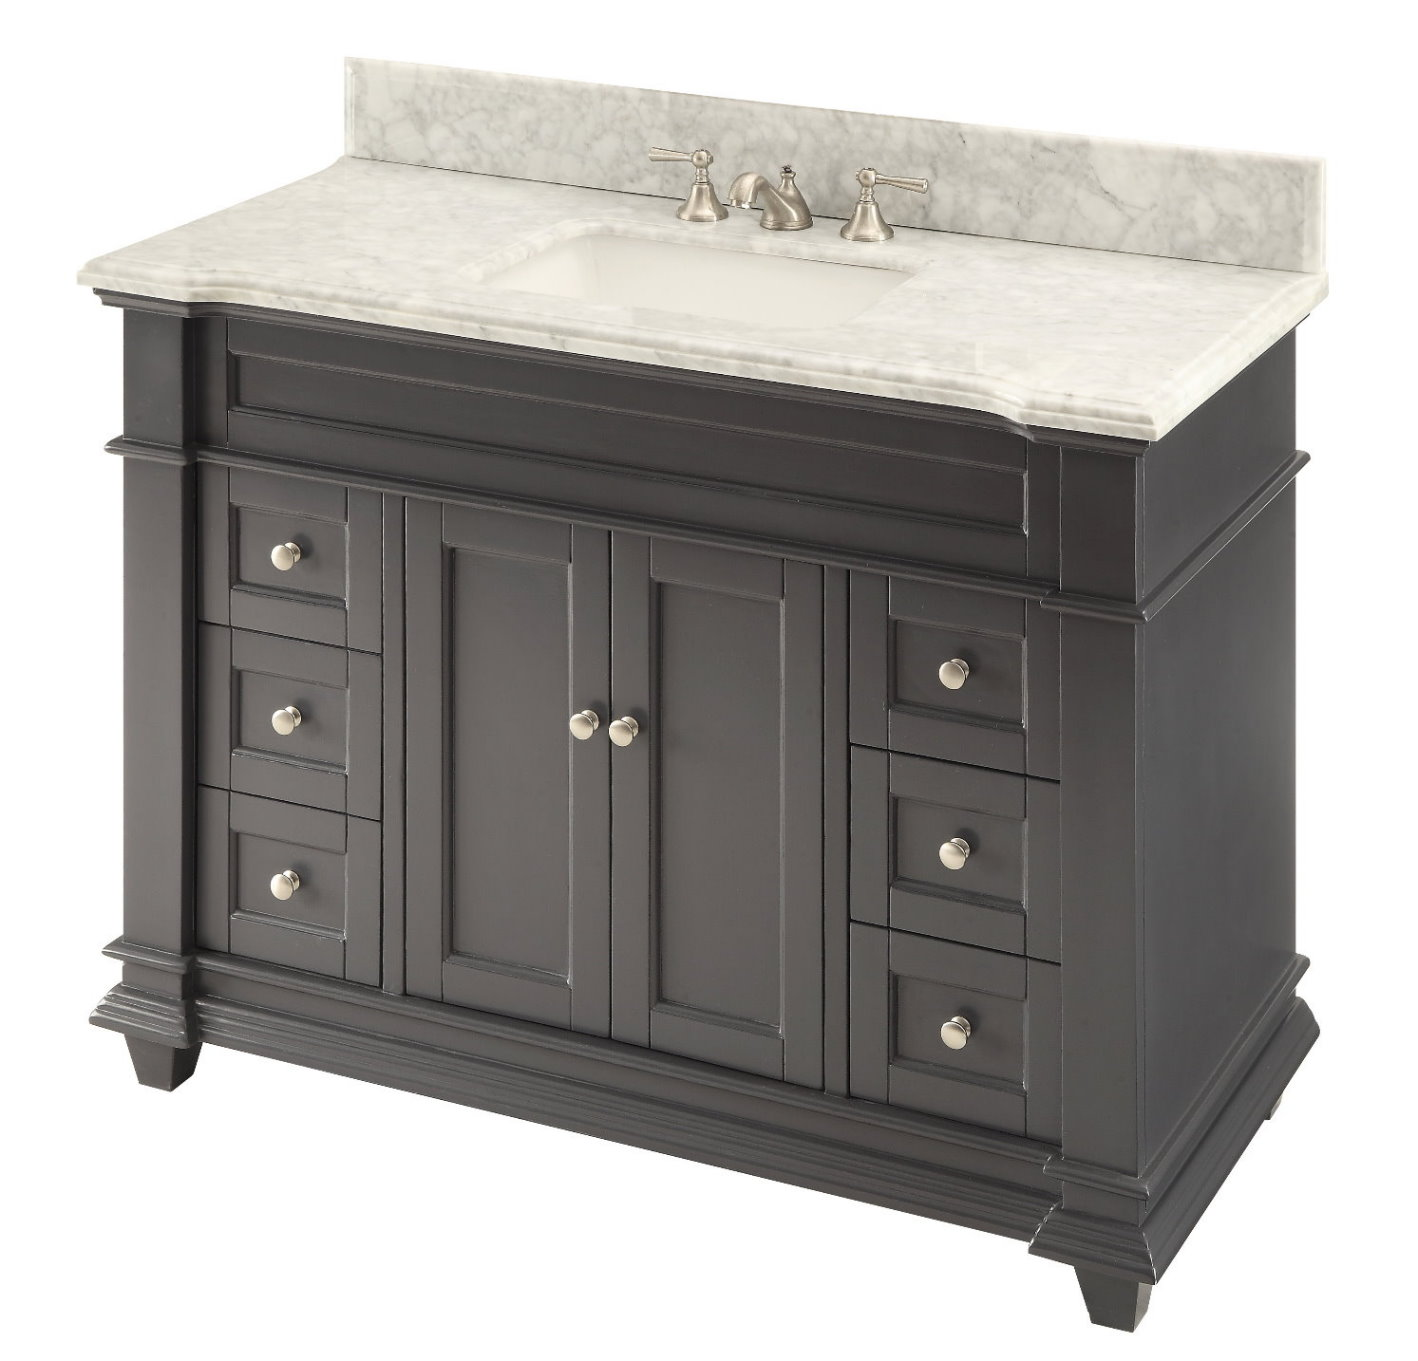 vanities inch double mti sink furniture vanity brand amimage by bathroom trends veneer birch wood